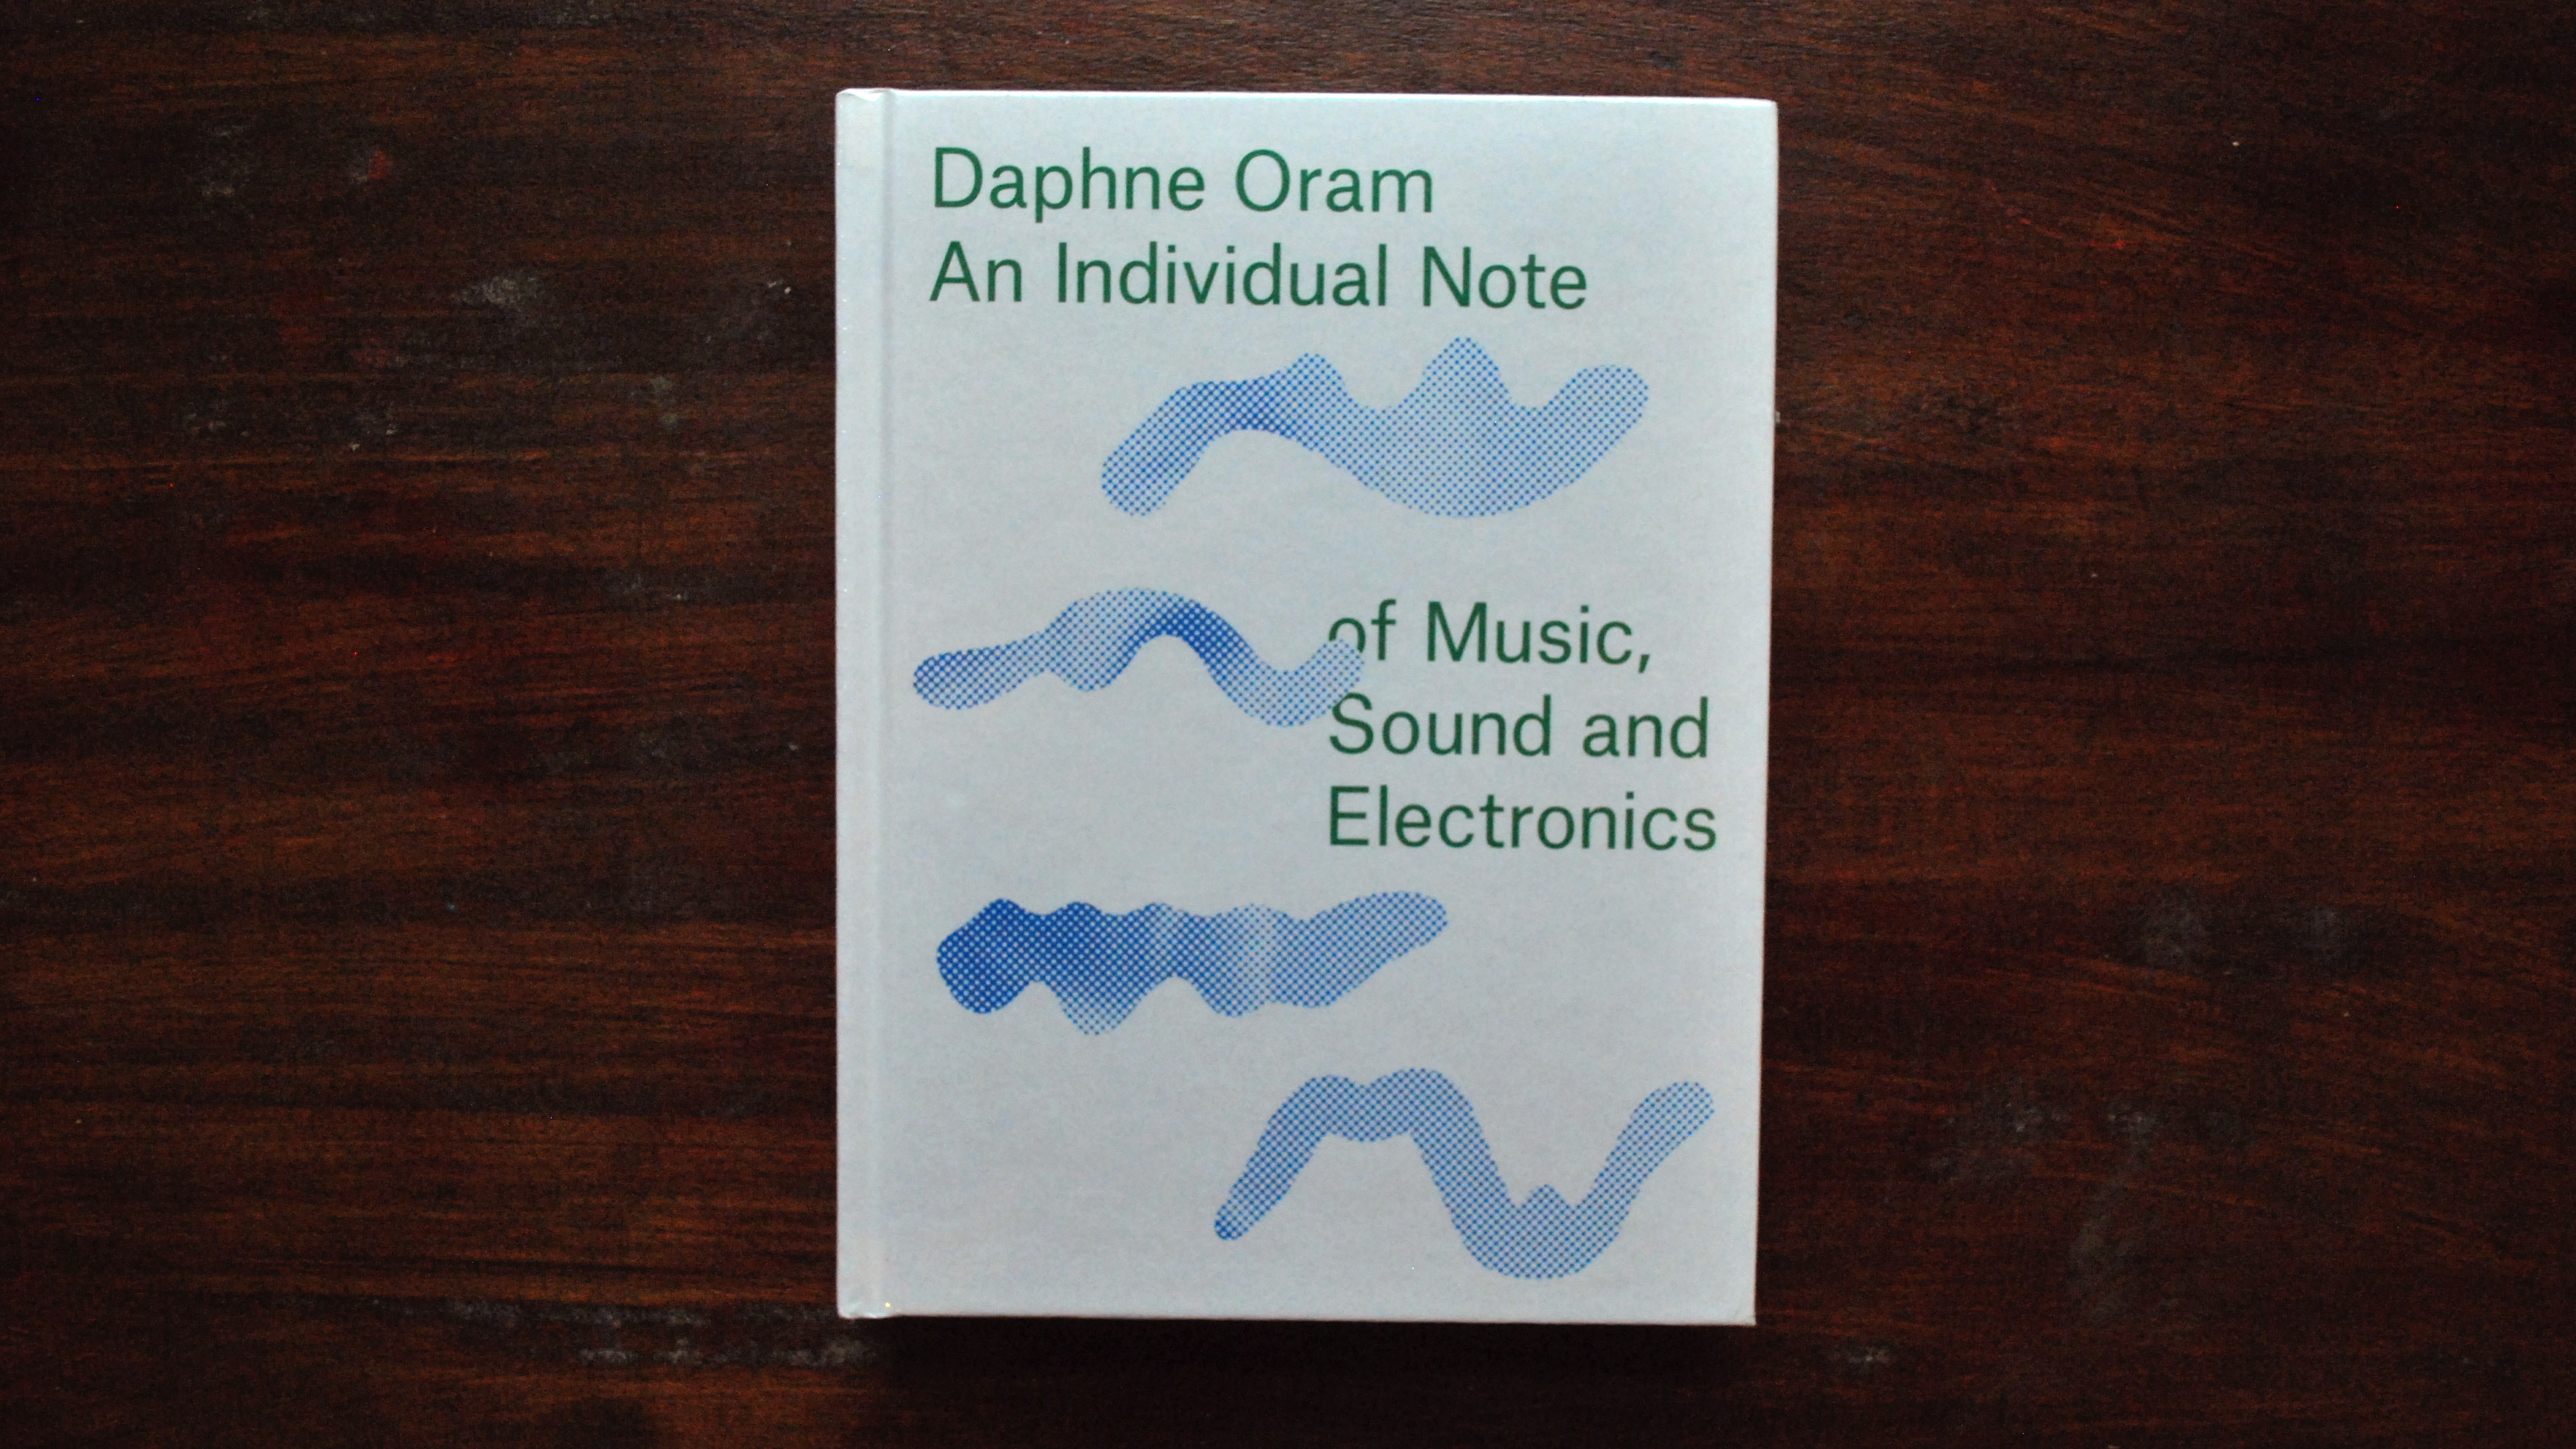 Daphne Oram - An Individual Note